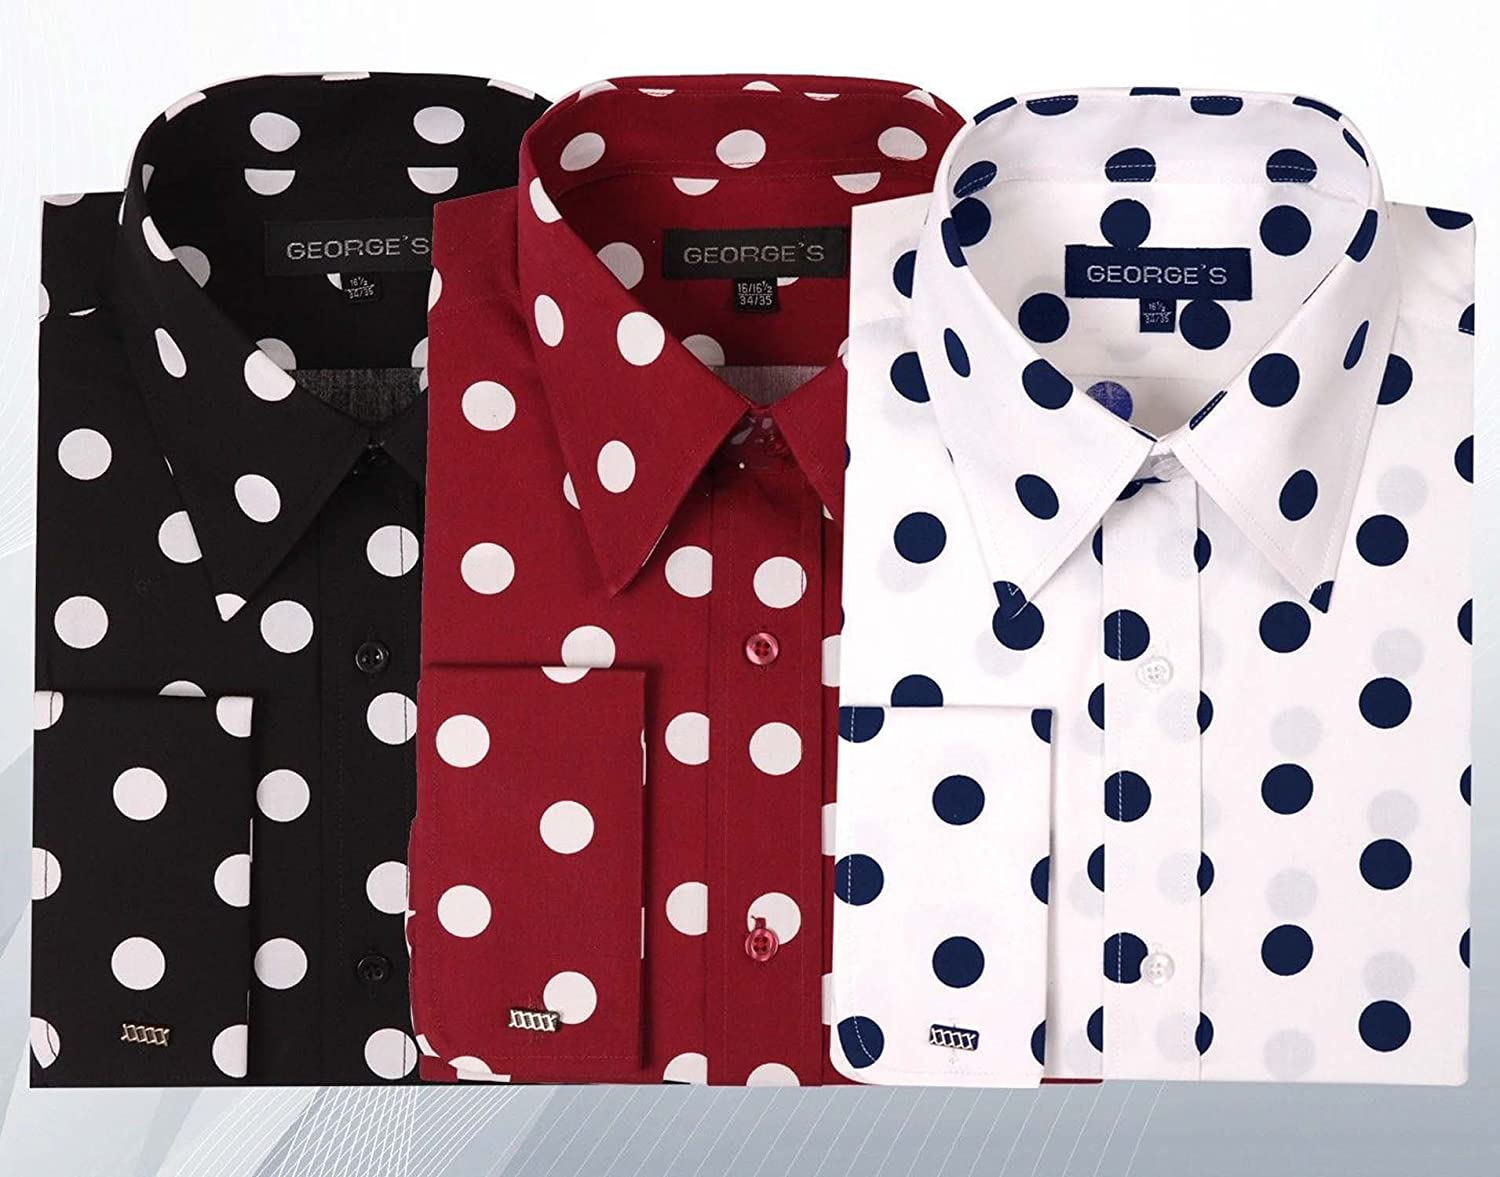 George's Big Polka Dot Pattern Shirt With French Cuff AH616-BK-18 ...